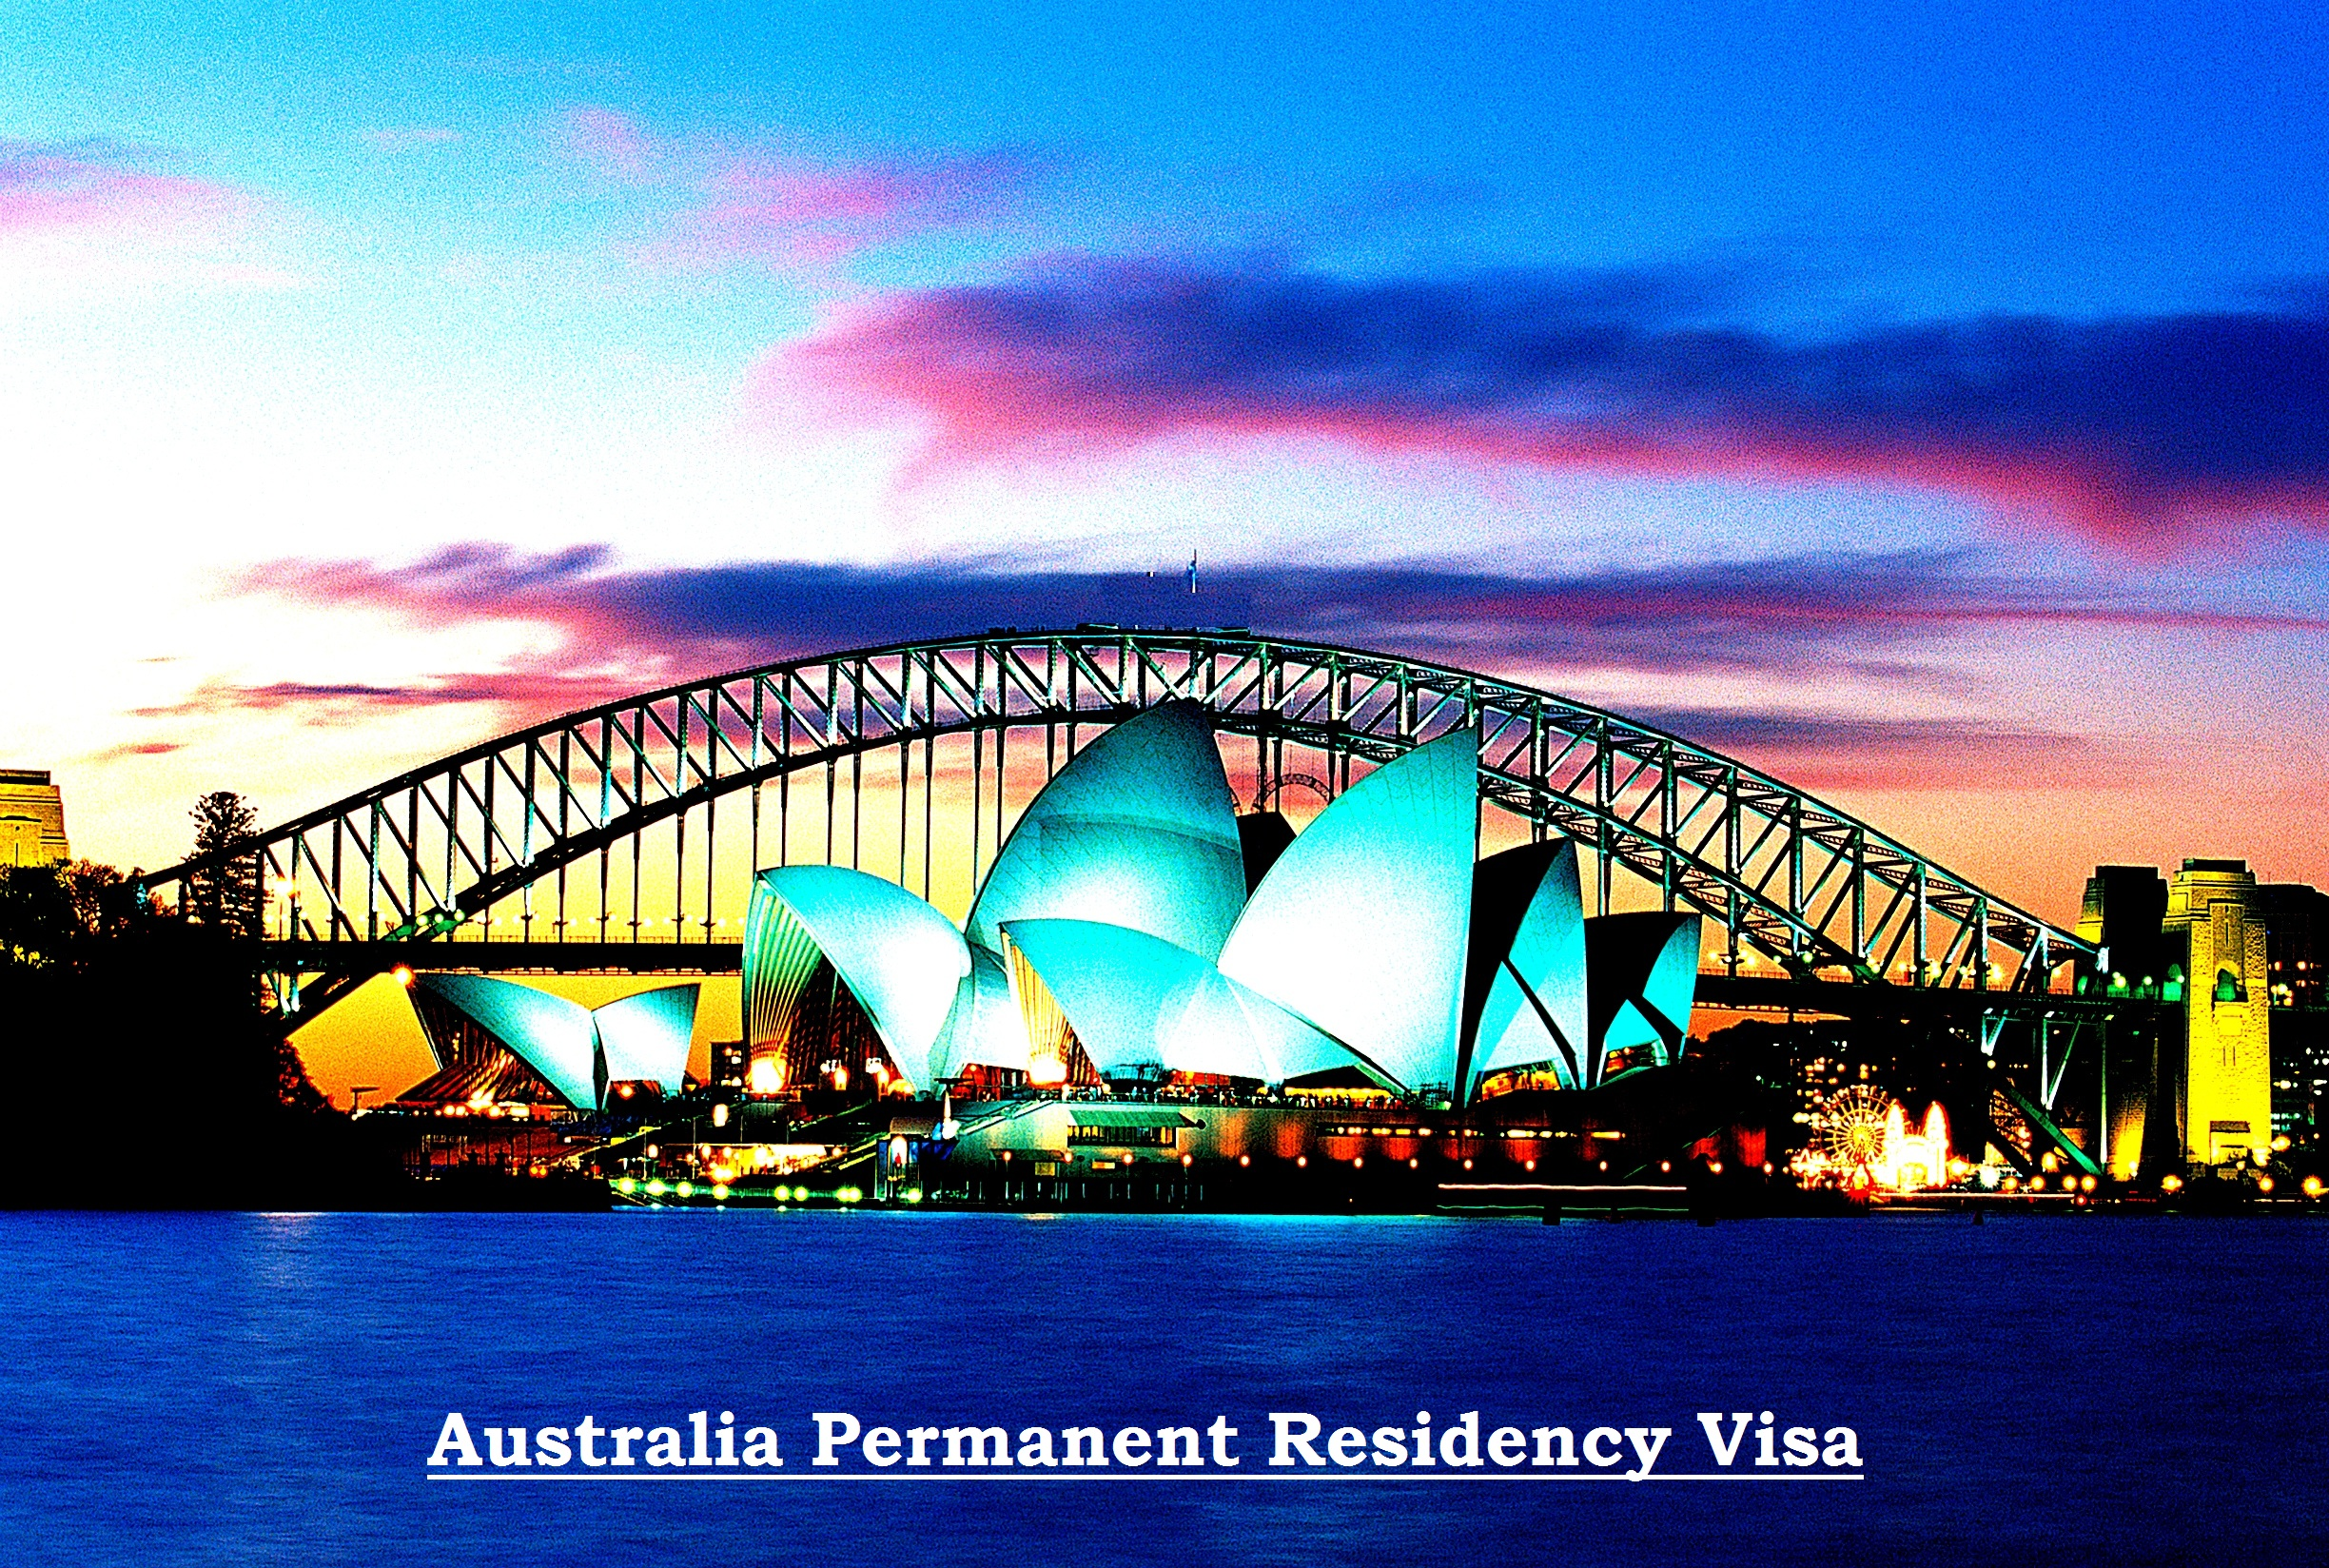 Permanent Residency Visa for Australia